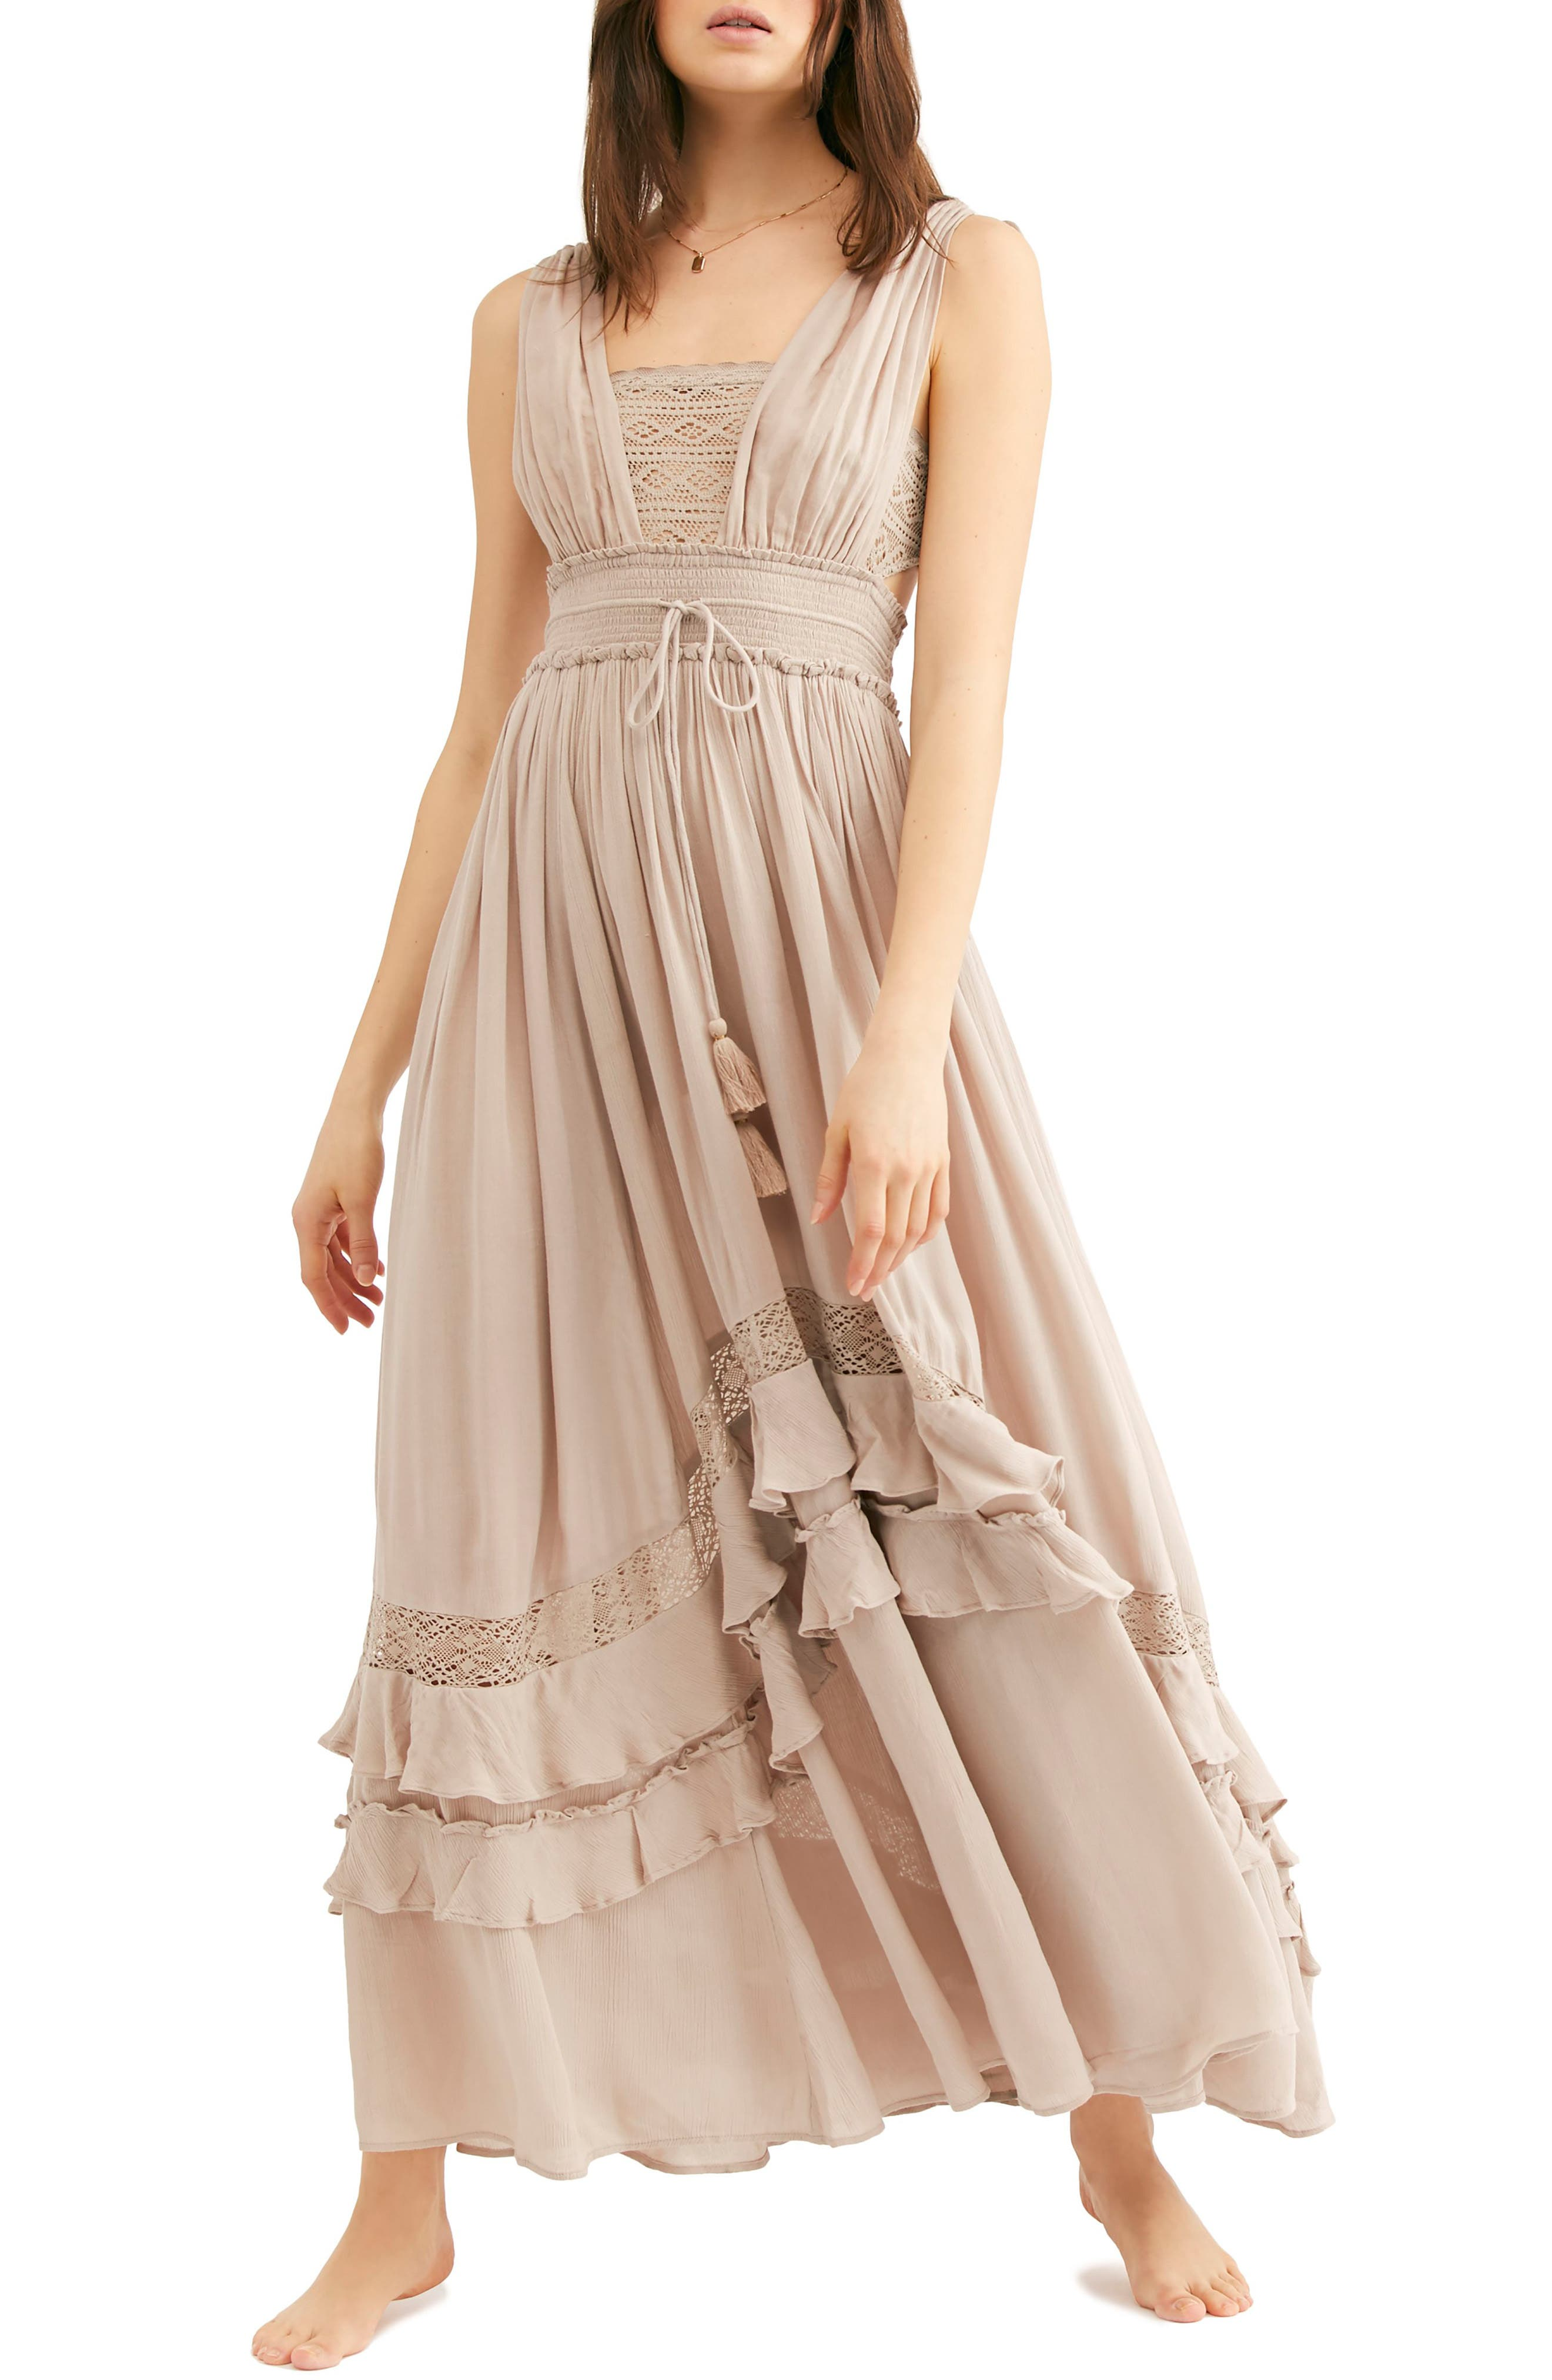 FREE PEOPLE Endless Summer by Free People Santa Maria Maxi Dress, Main, color, 250